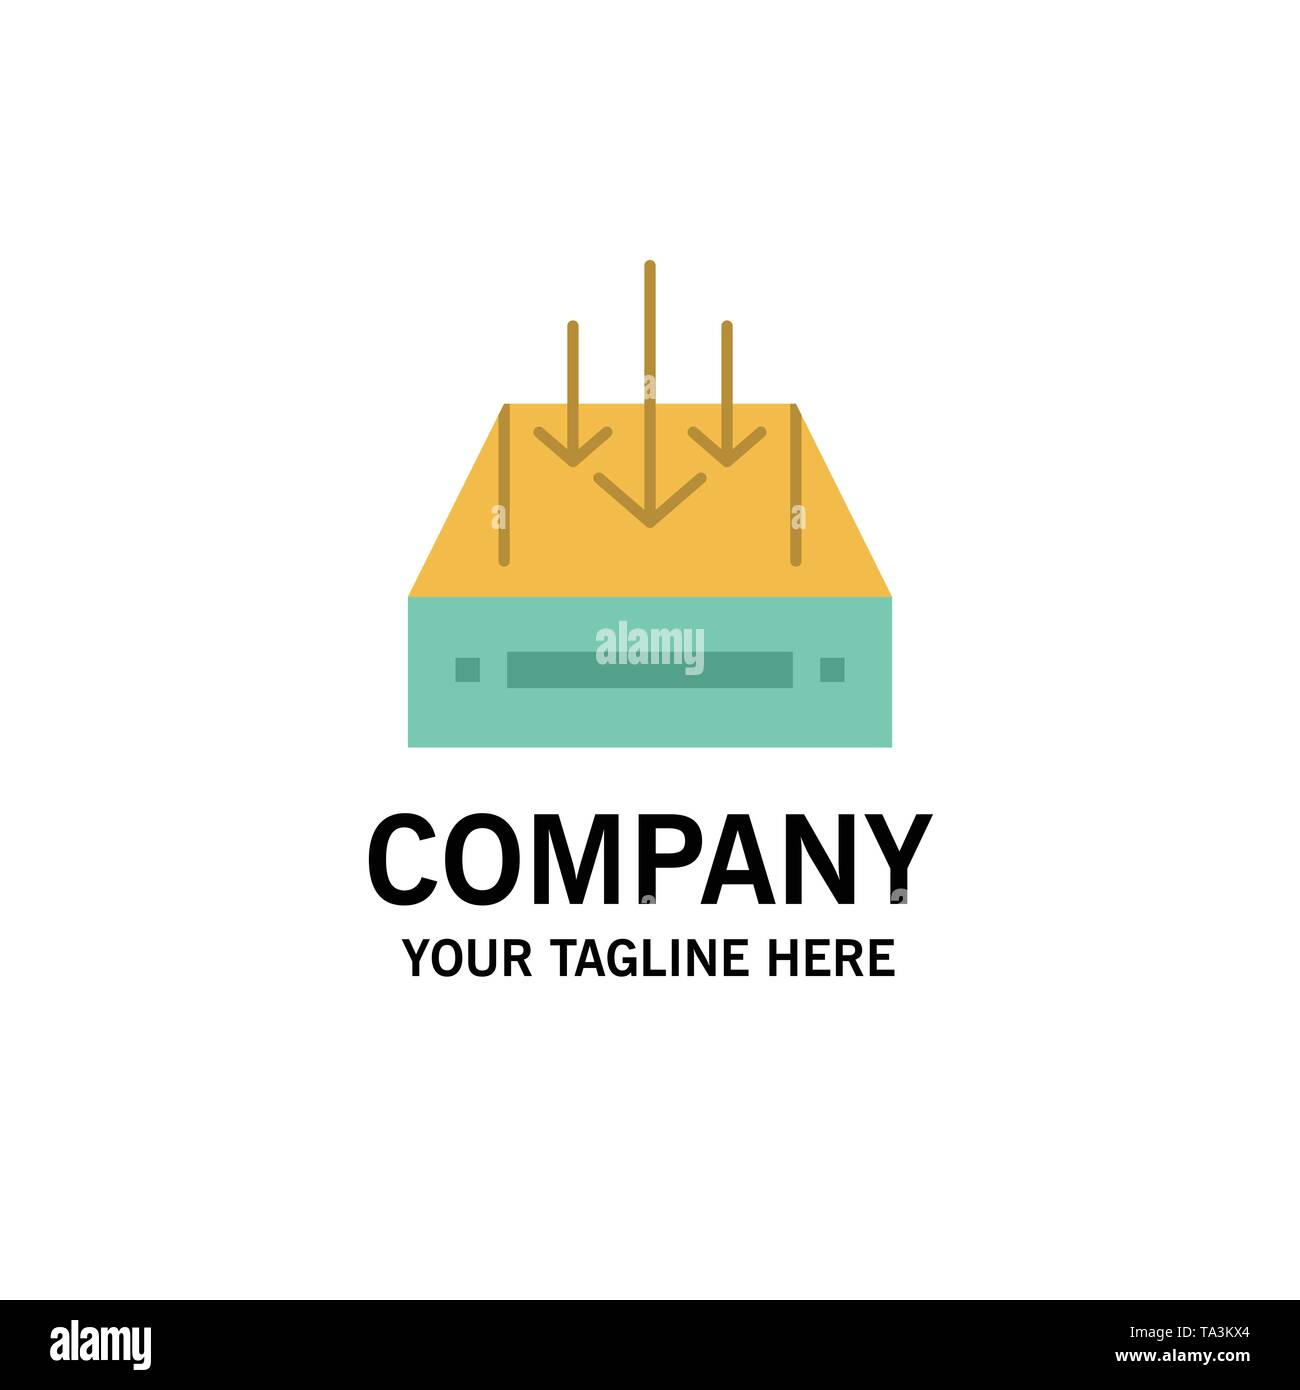 Inbox, Mail, Box, Container, Delivery, Parcel Business Logo Template. Flat Color - Stock Image